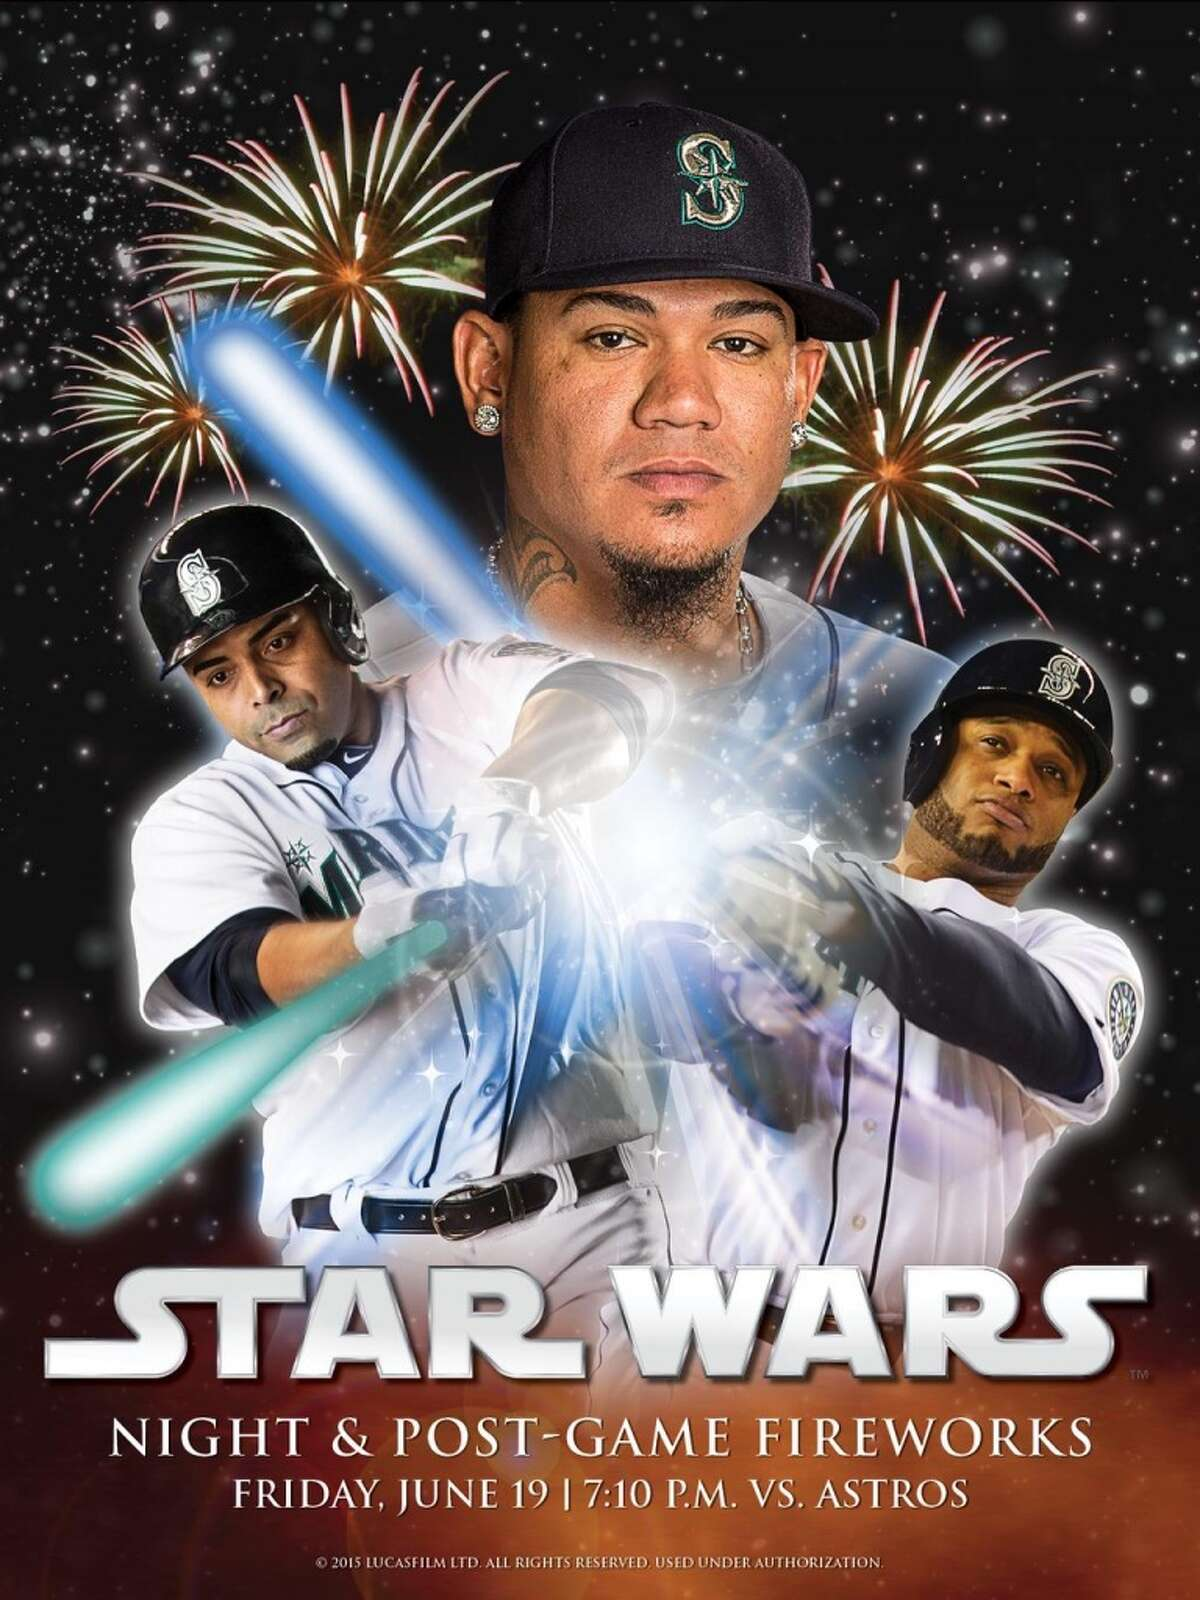 'Star Wars' Night The Force is finally coming to Safeco Field.